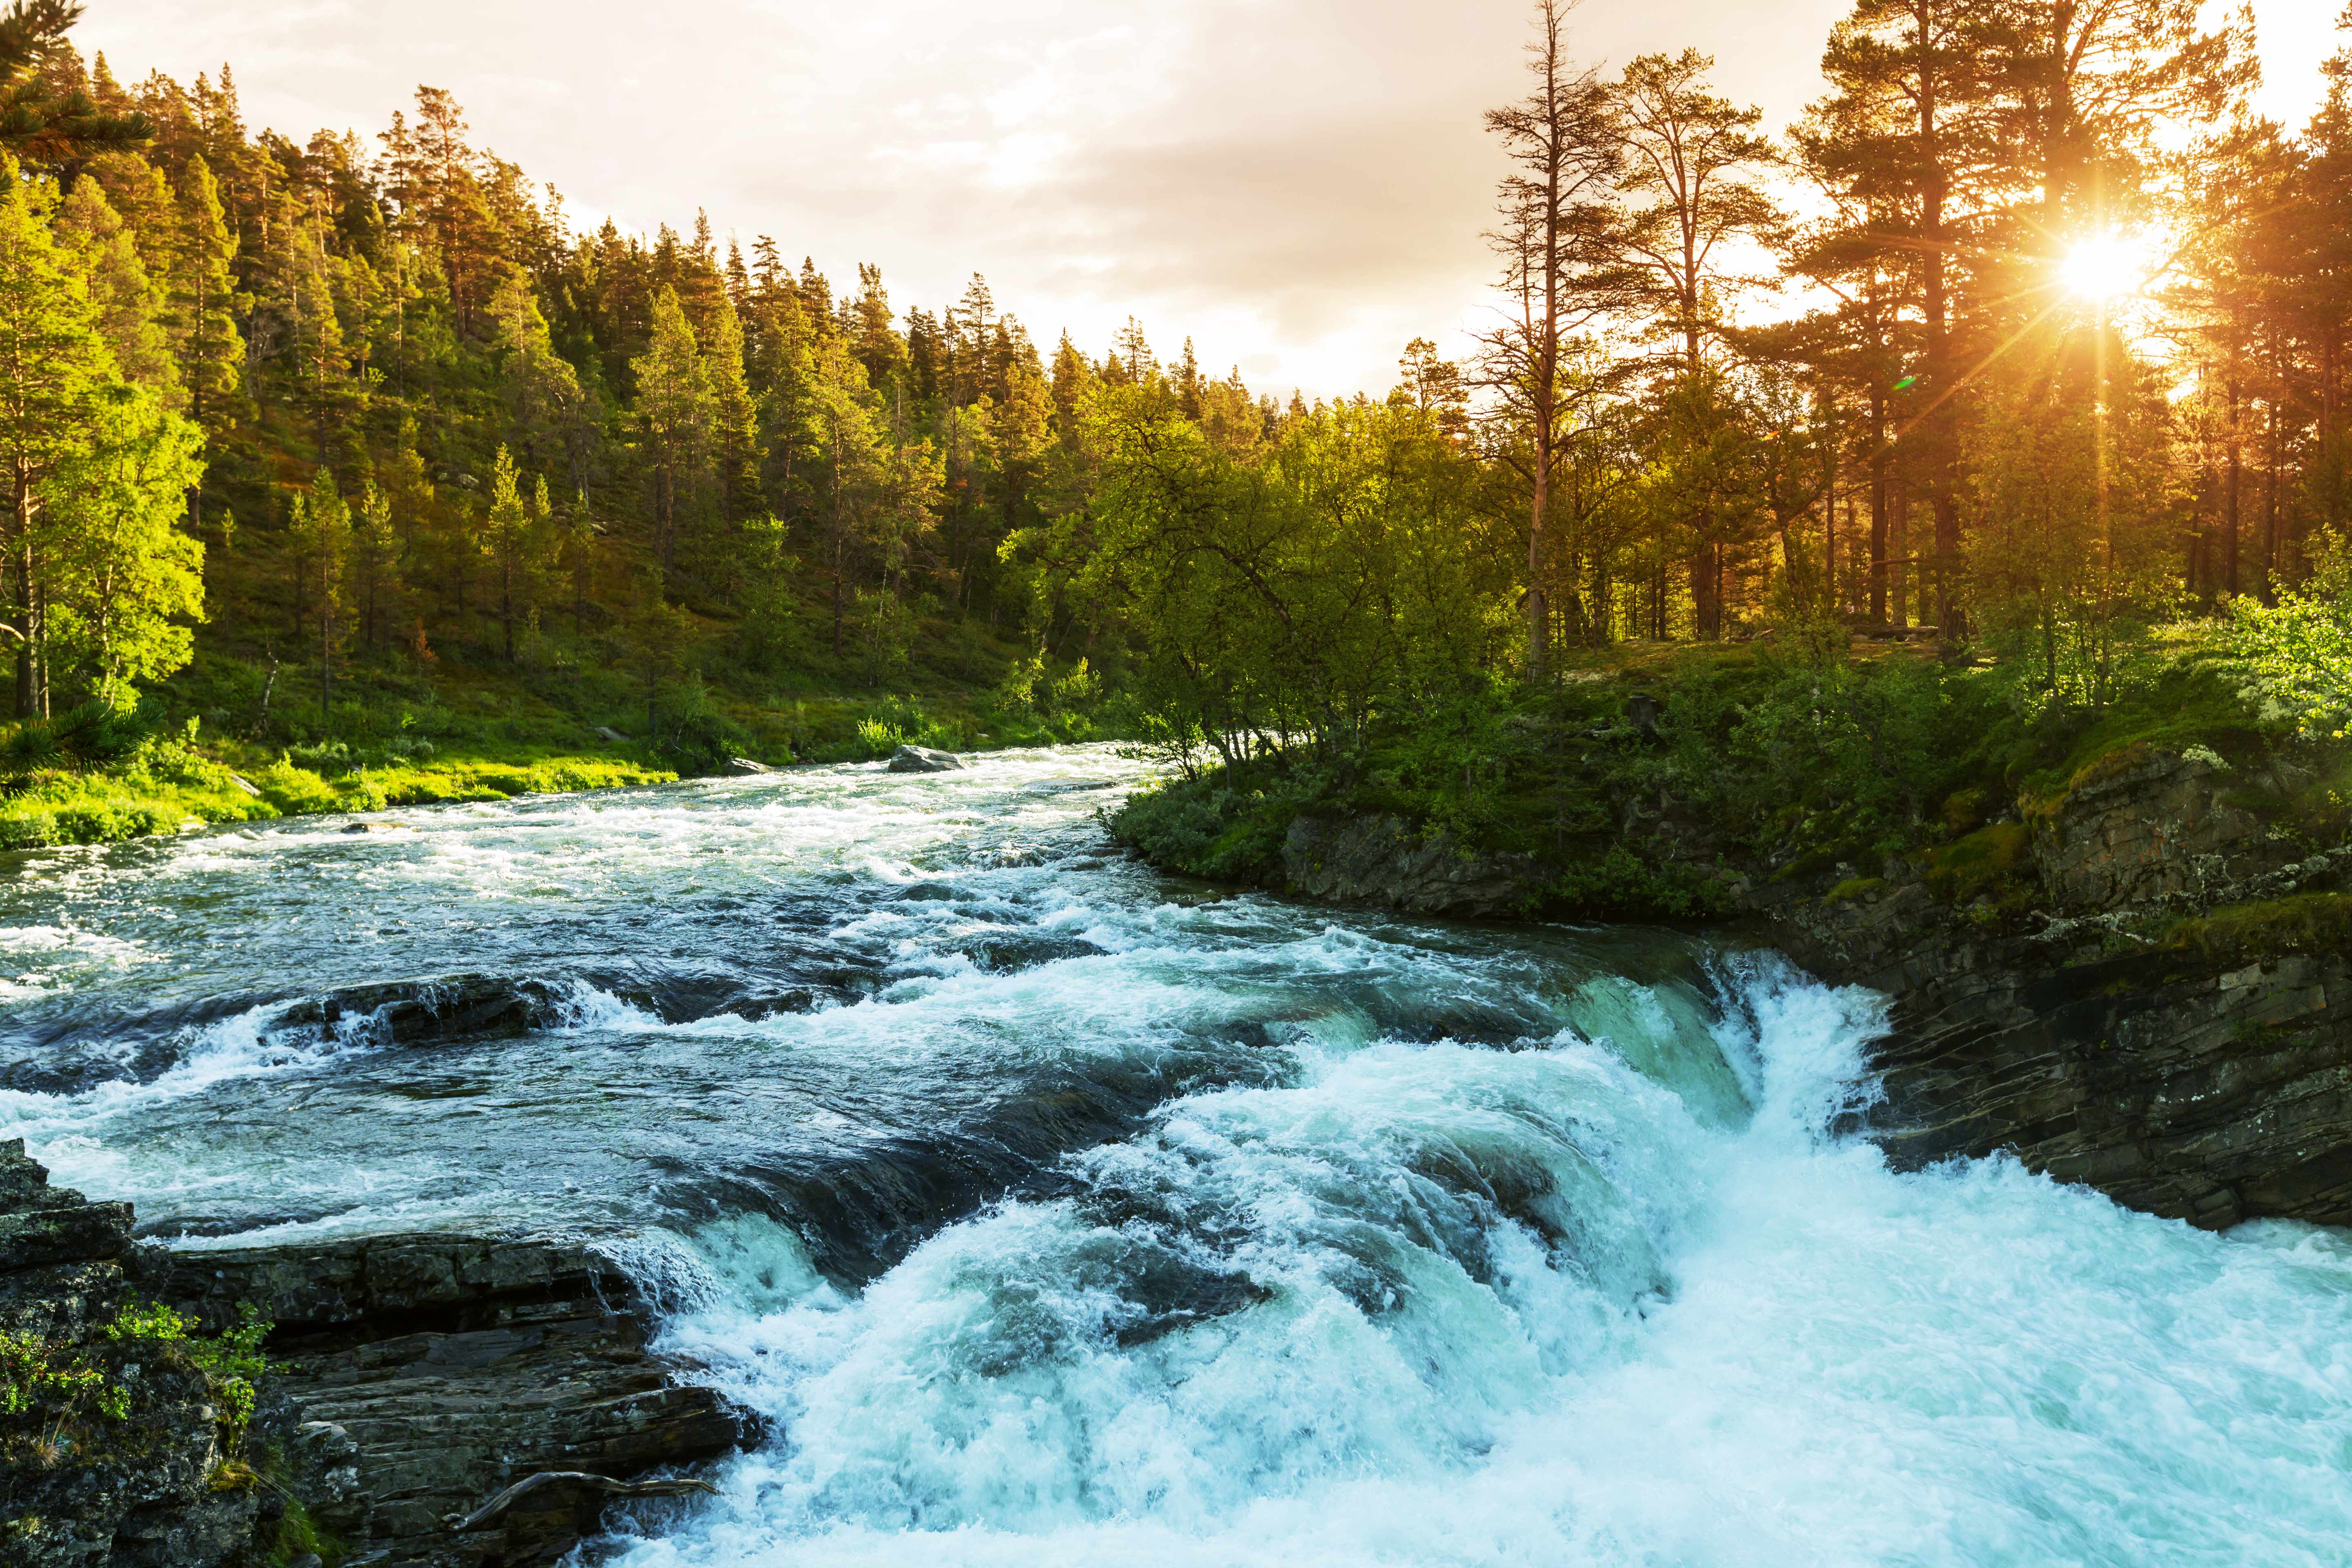 a rushing river with white-water through the forest and sunlight streaming throug the trees